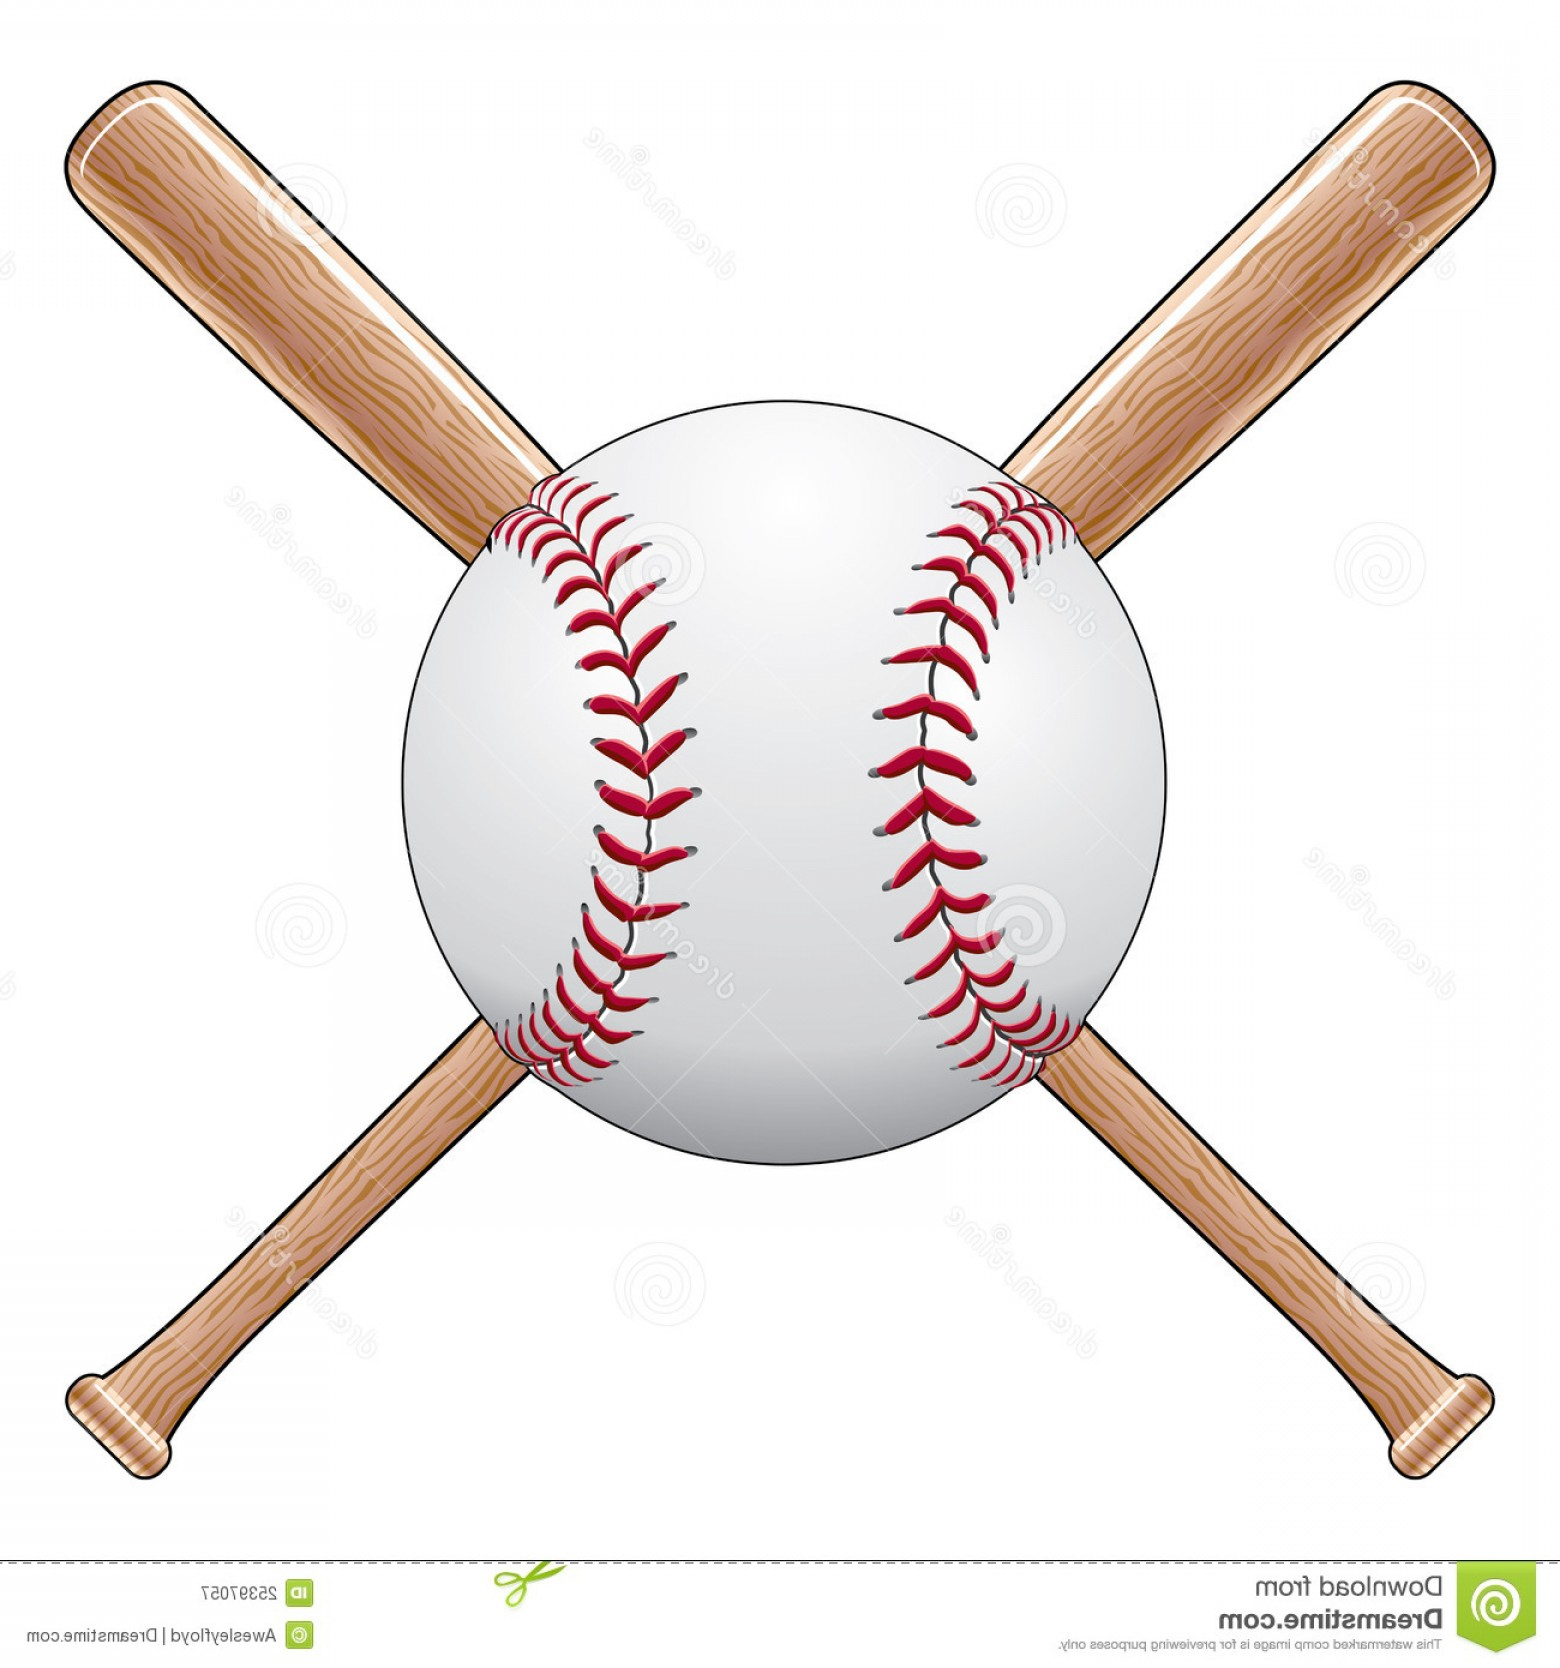 Vector Baseball Cross: Royalty Free Stock Photography Baseball Bats Image